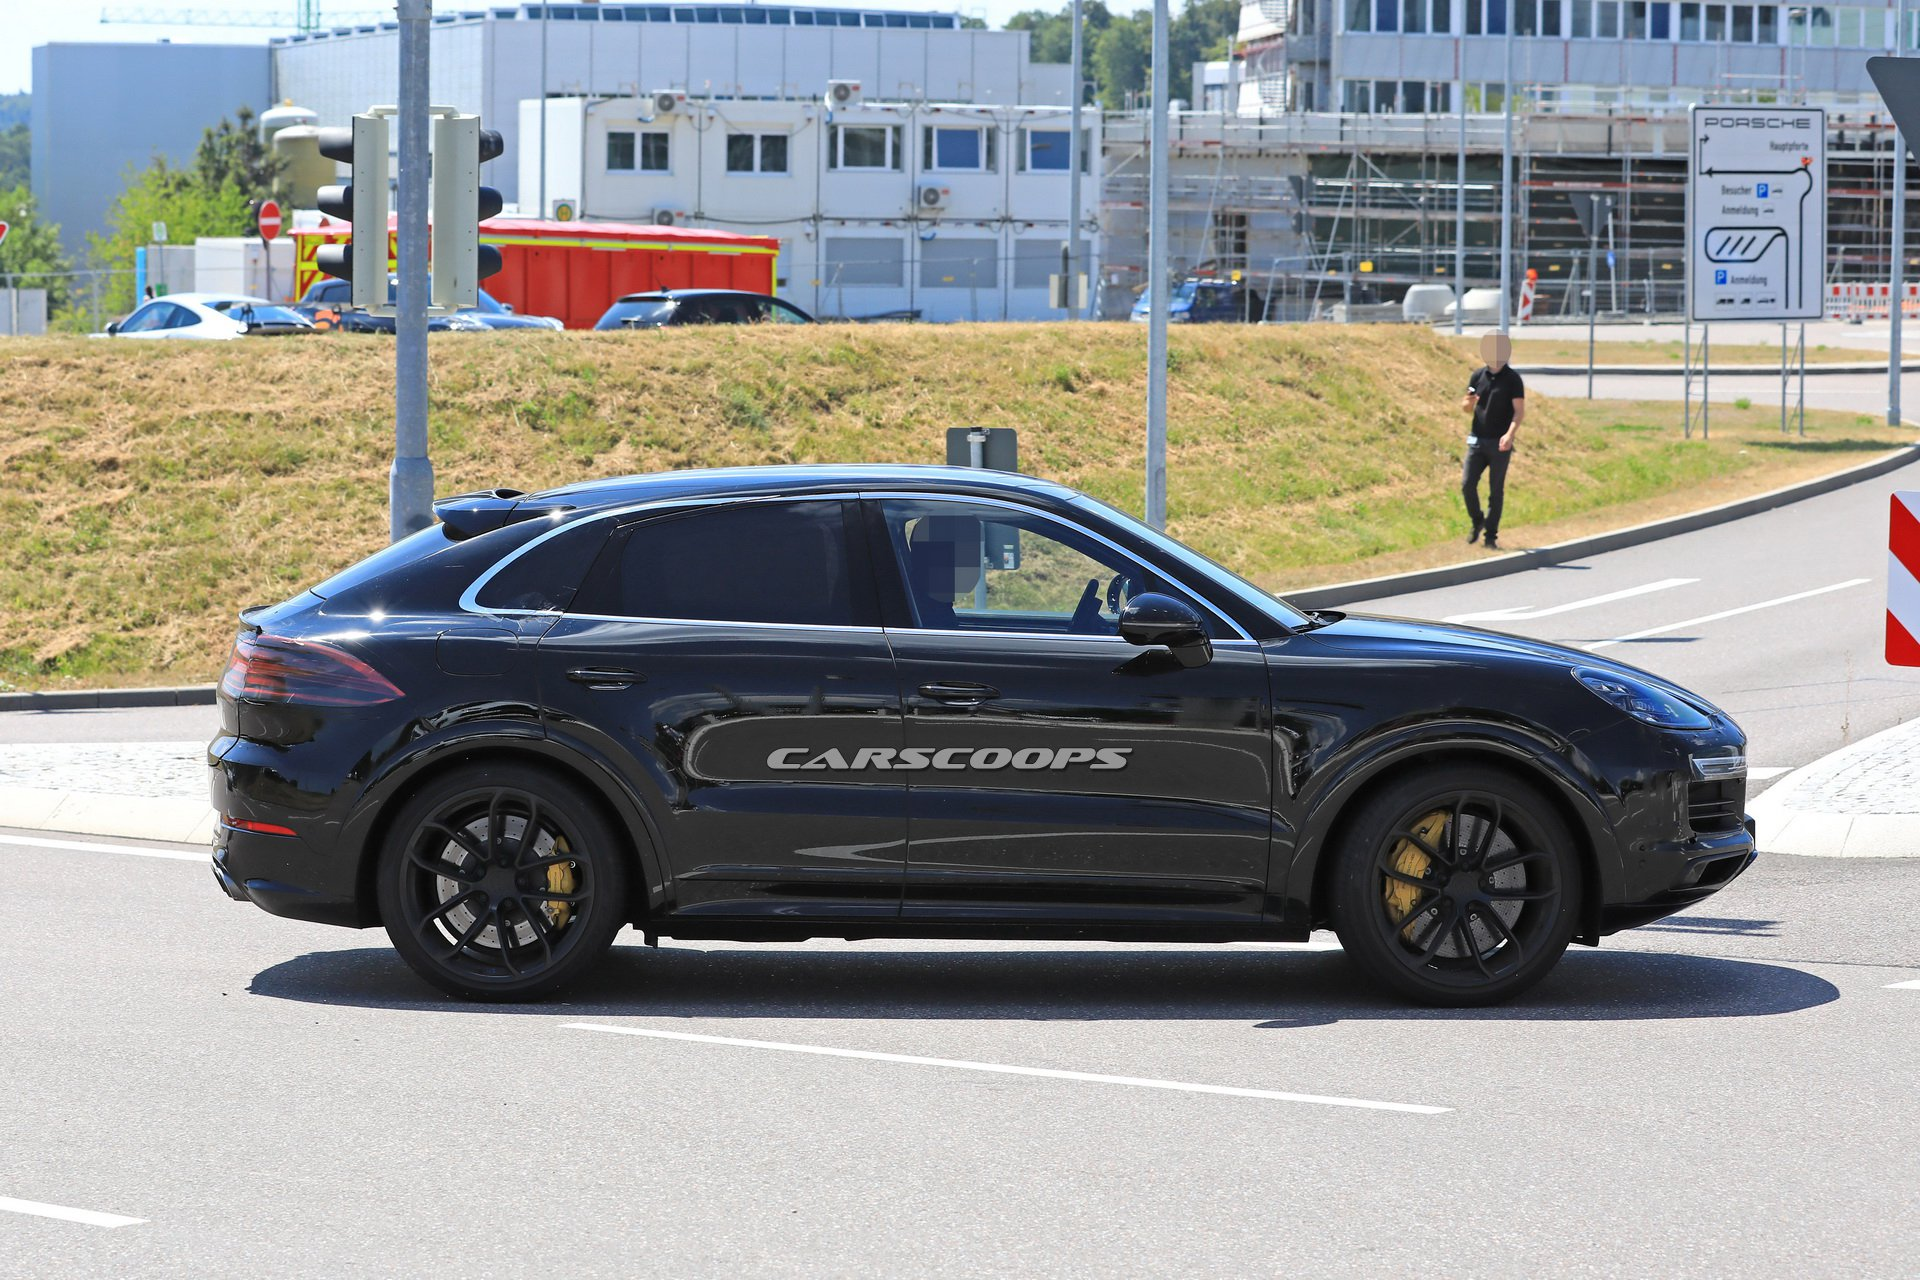 2b8eeb1e-porsche-cayenne-coupe-first-spy-13.jpg